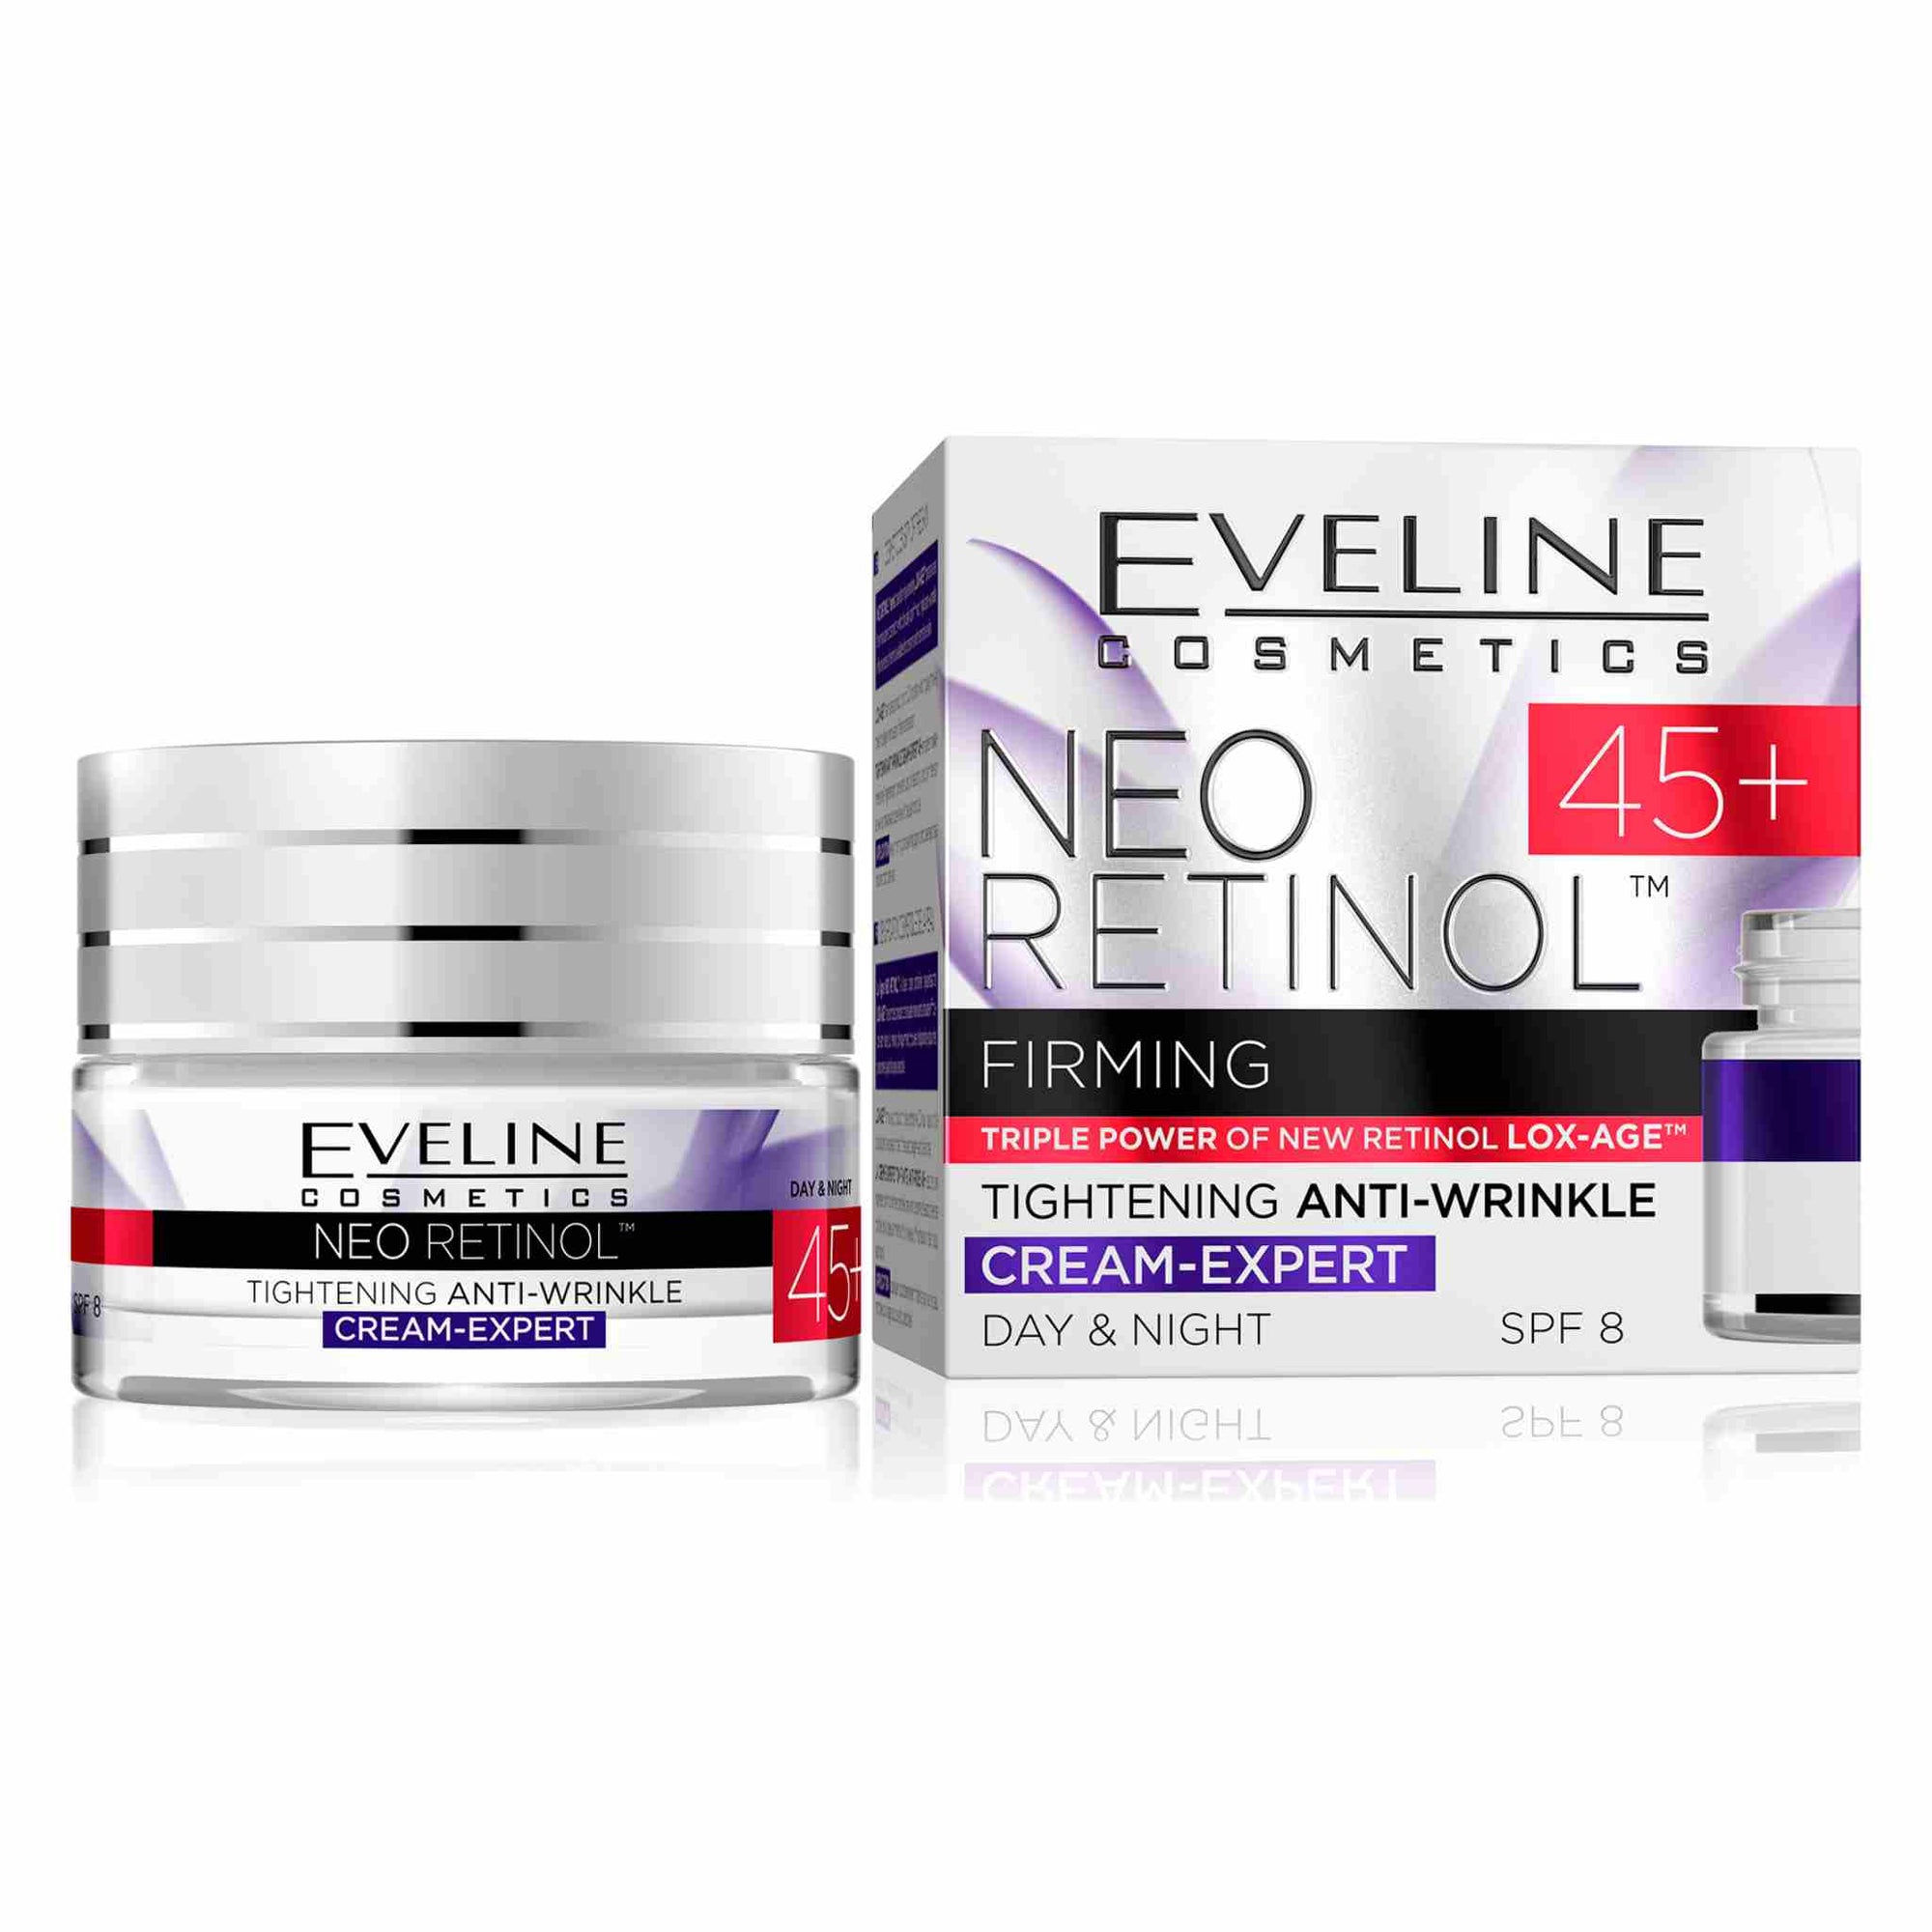 Neo Retinol Moisturizing Anti Wrinkle Day and Night Cream 45+